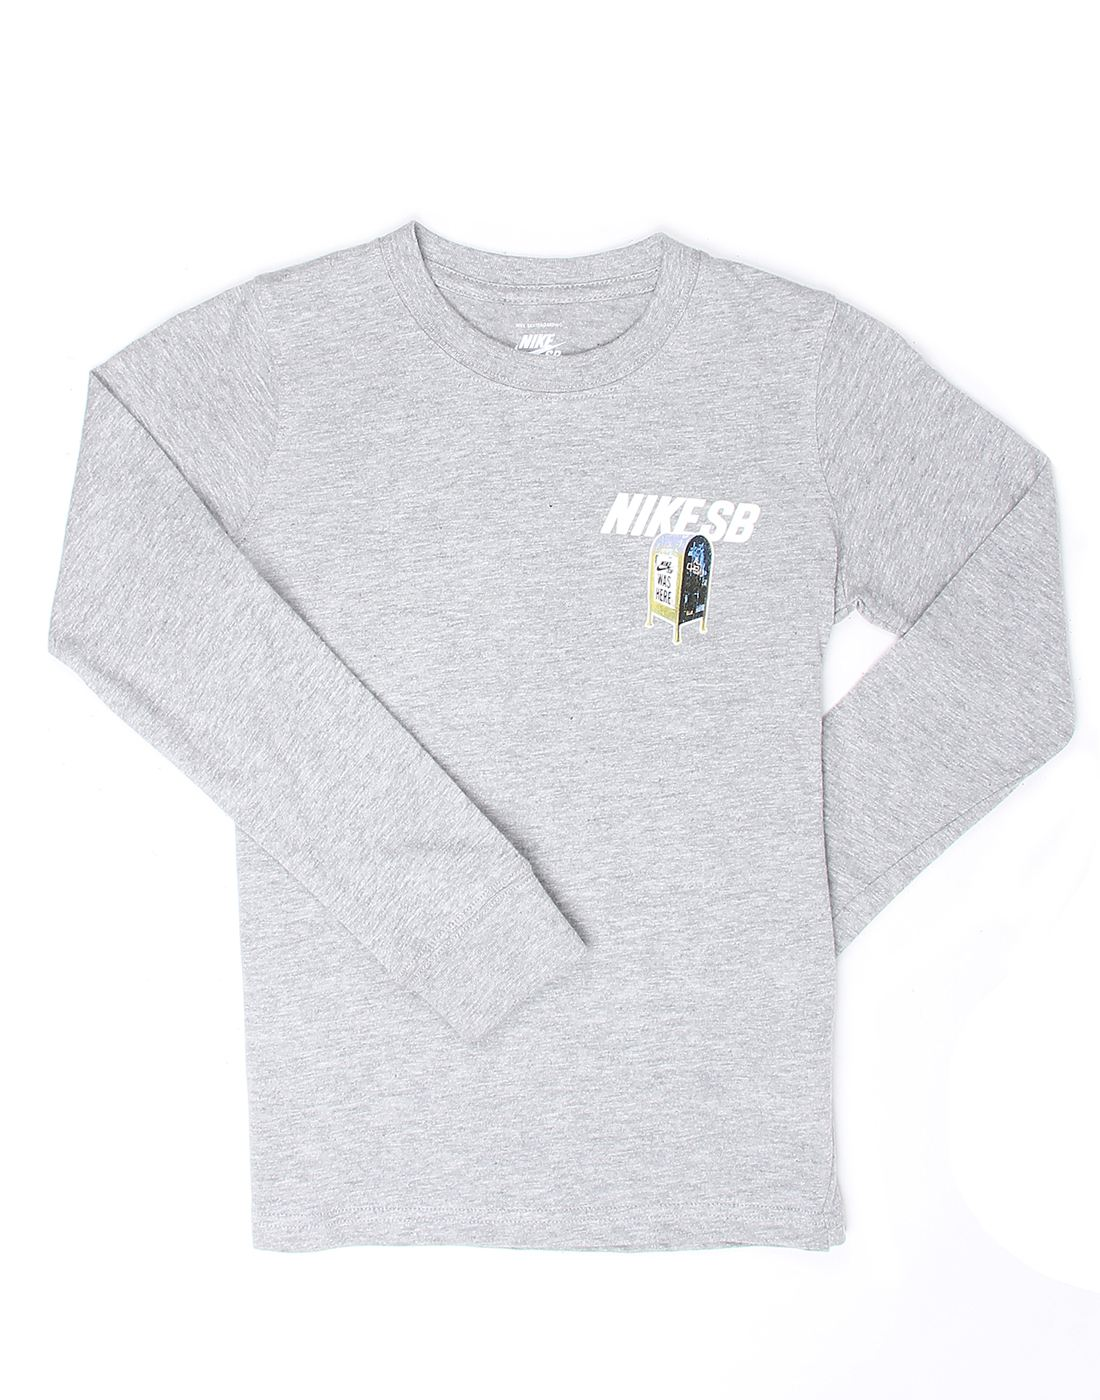 Nike Grey Cotton Boys T-Shirt